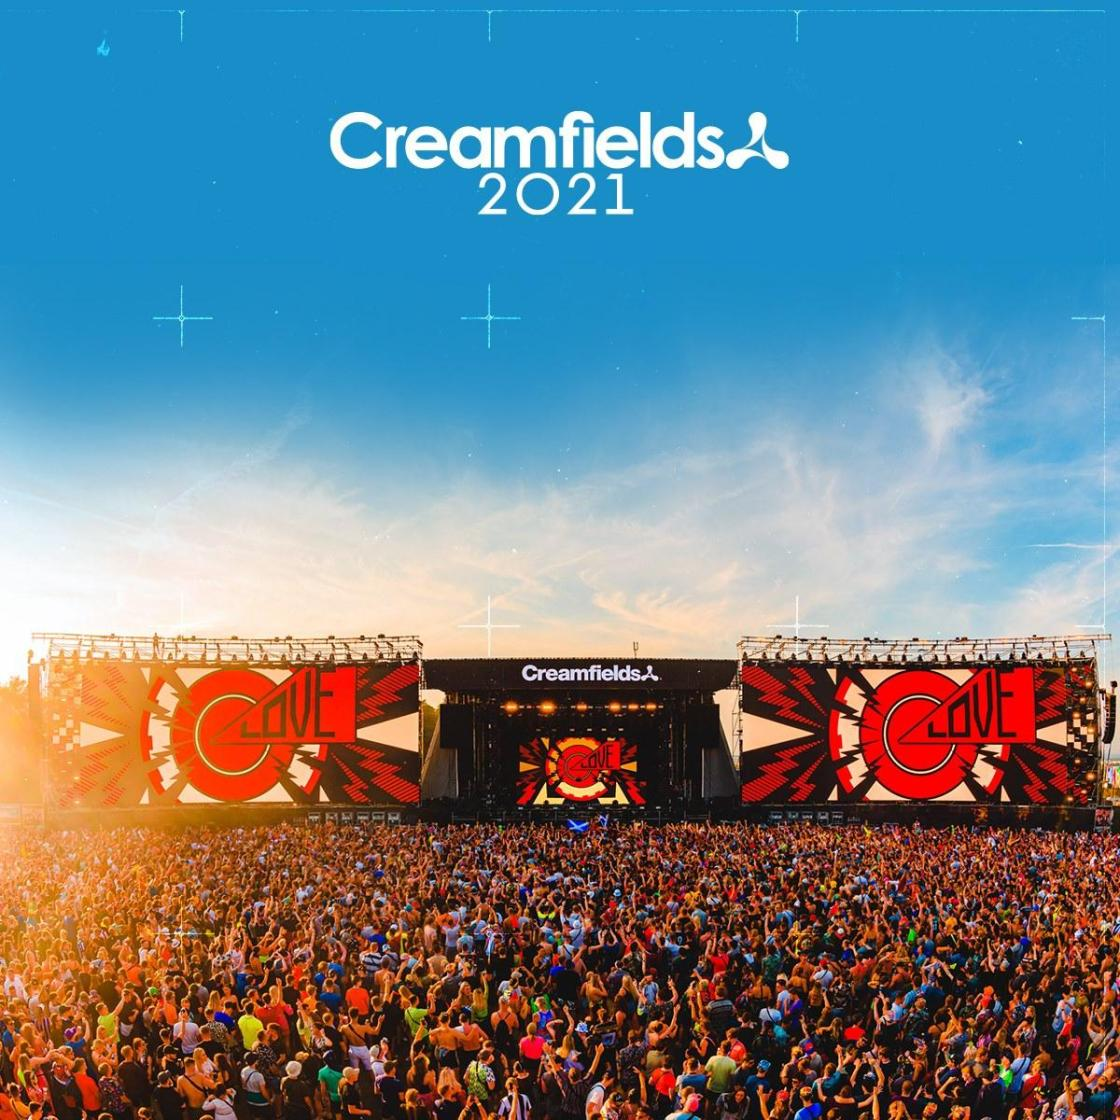 #Creamfields is what August bank holiday is all about!...